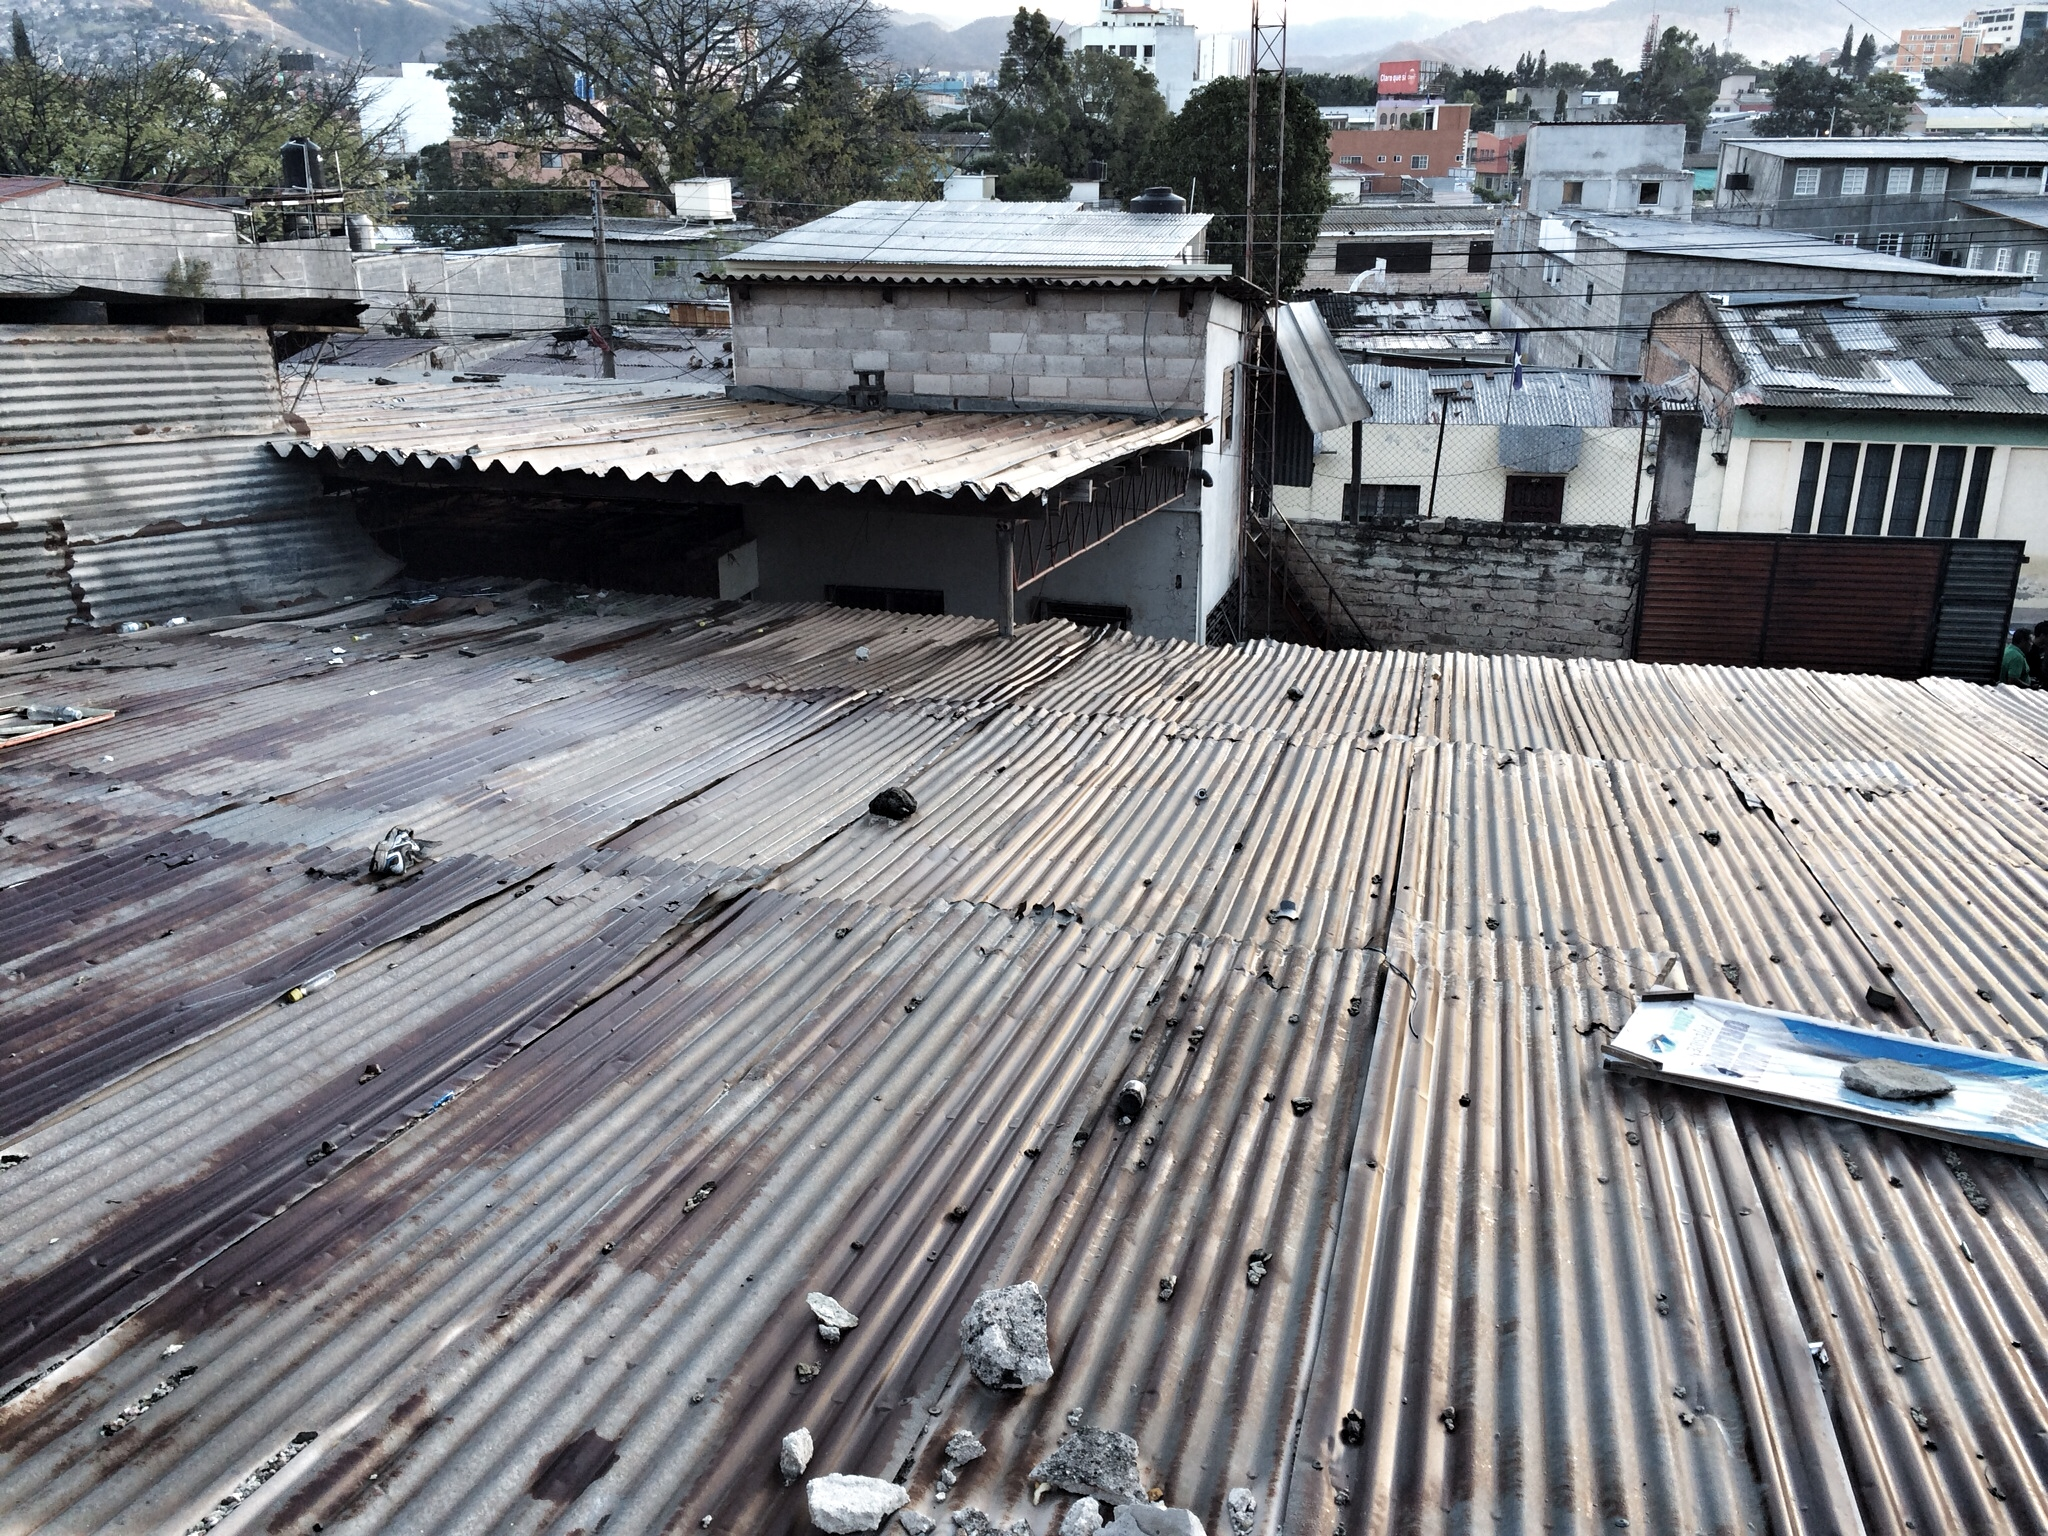 Tegucigalpa Rooftops on the Way to the Stadium